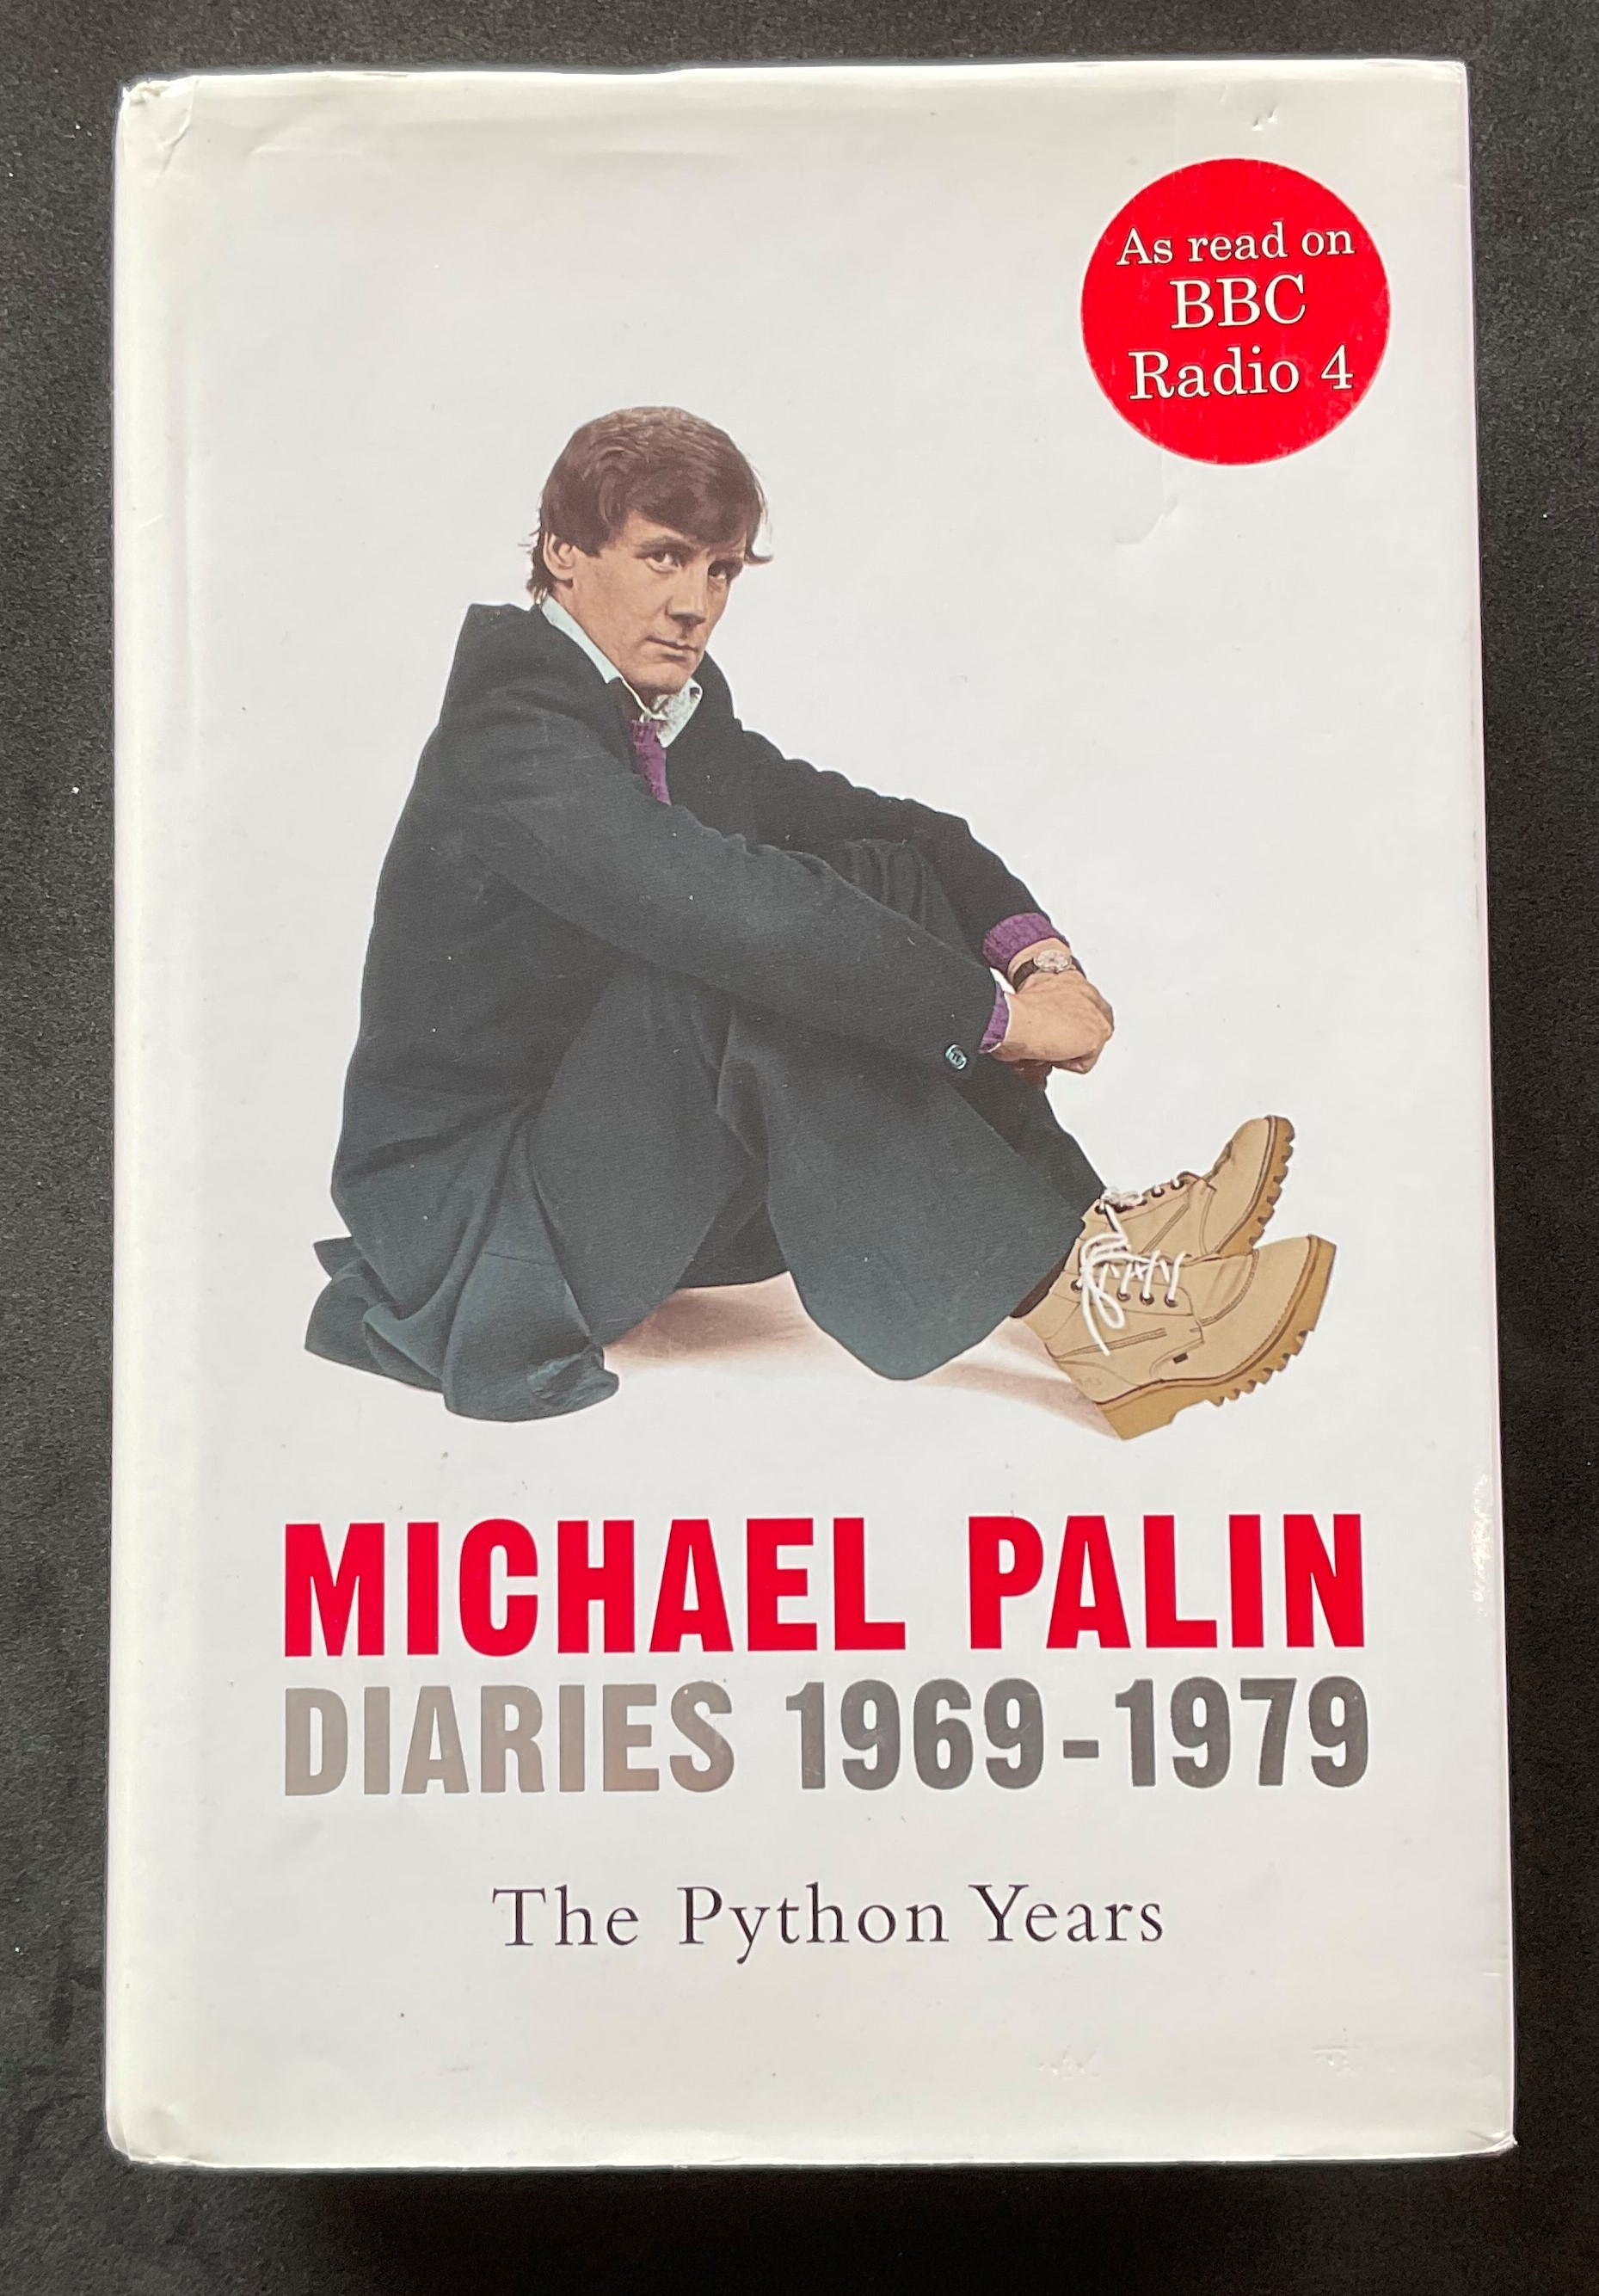 Actor and comedian Michael Palins autobiography, The Python Years 1969-79, signed and dedicated to